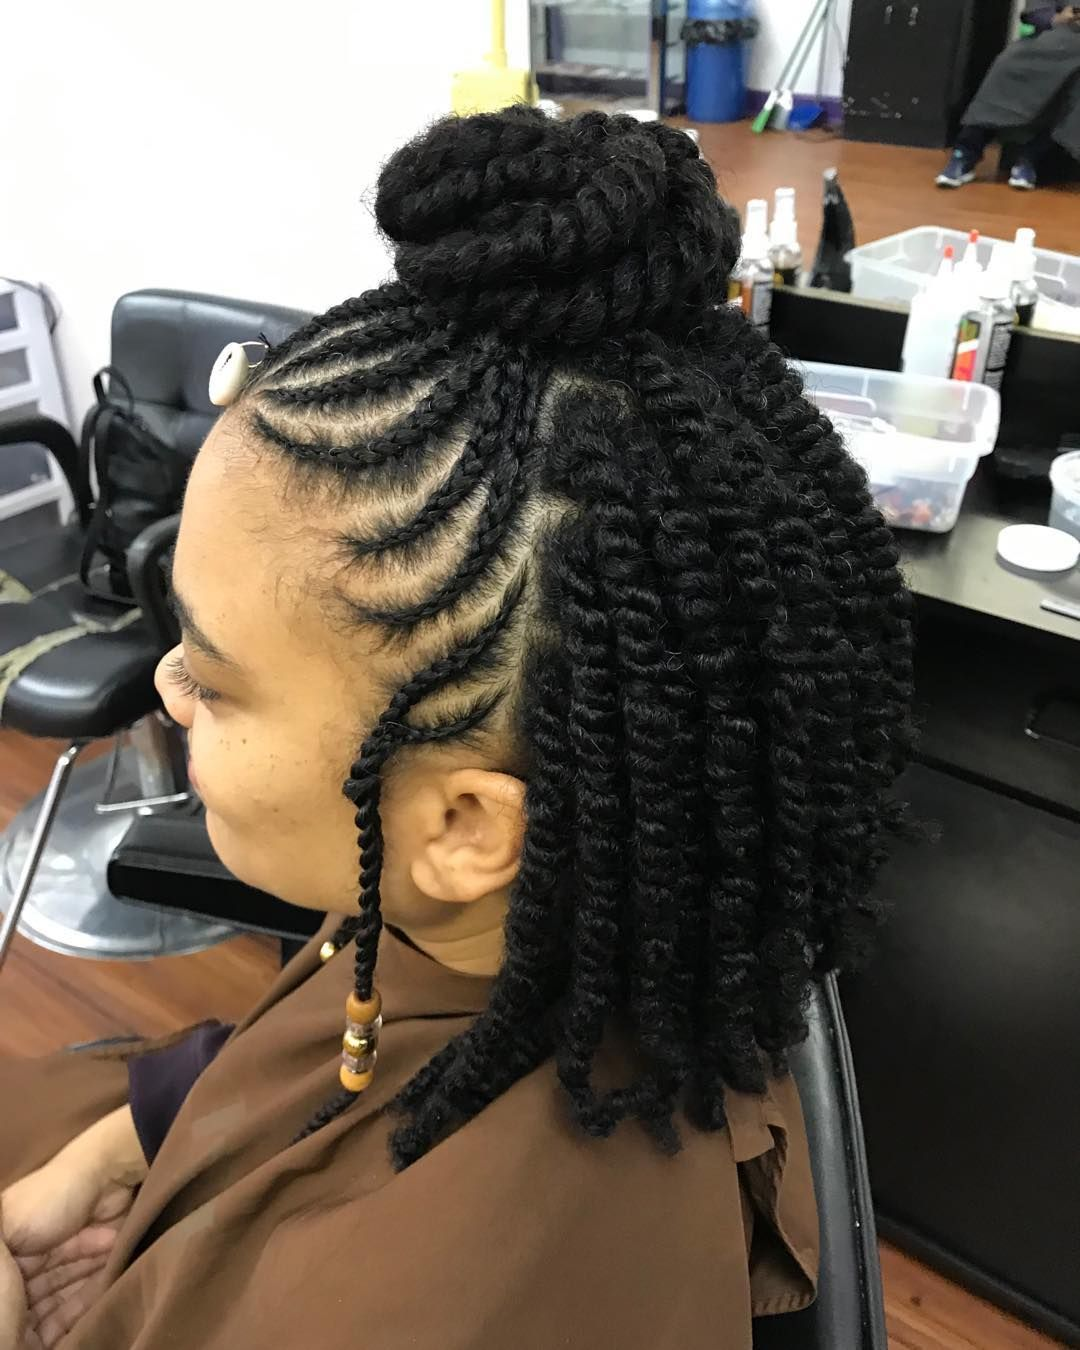 Pin By Salon Pk On Salon Pk Natural Hair Salon Short Natural Hair Styles Natural Hair Styles Black Women Hairstyles